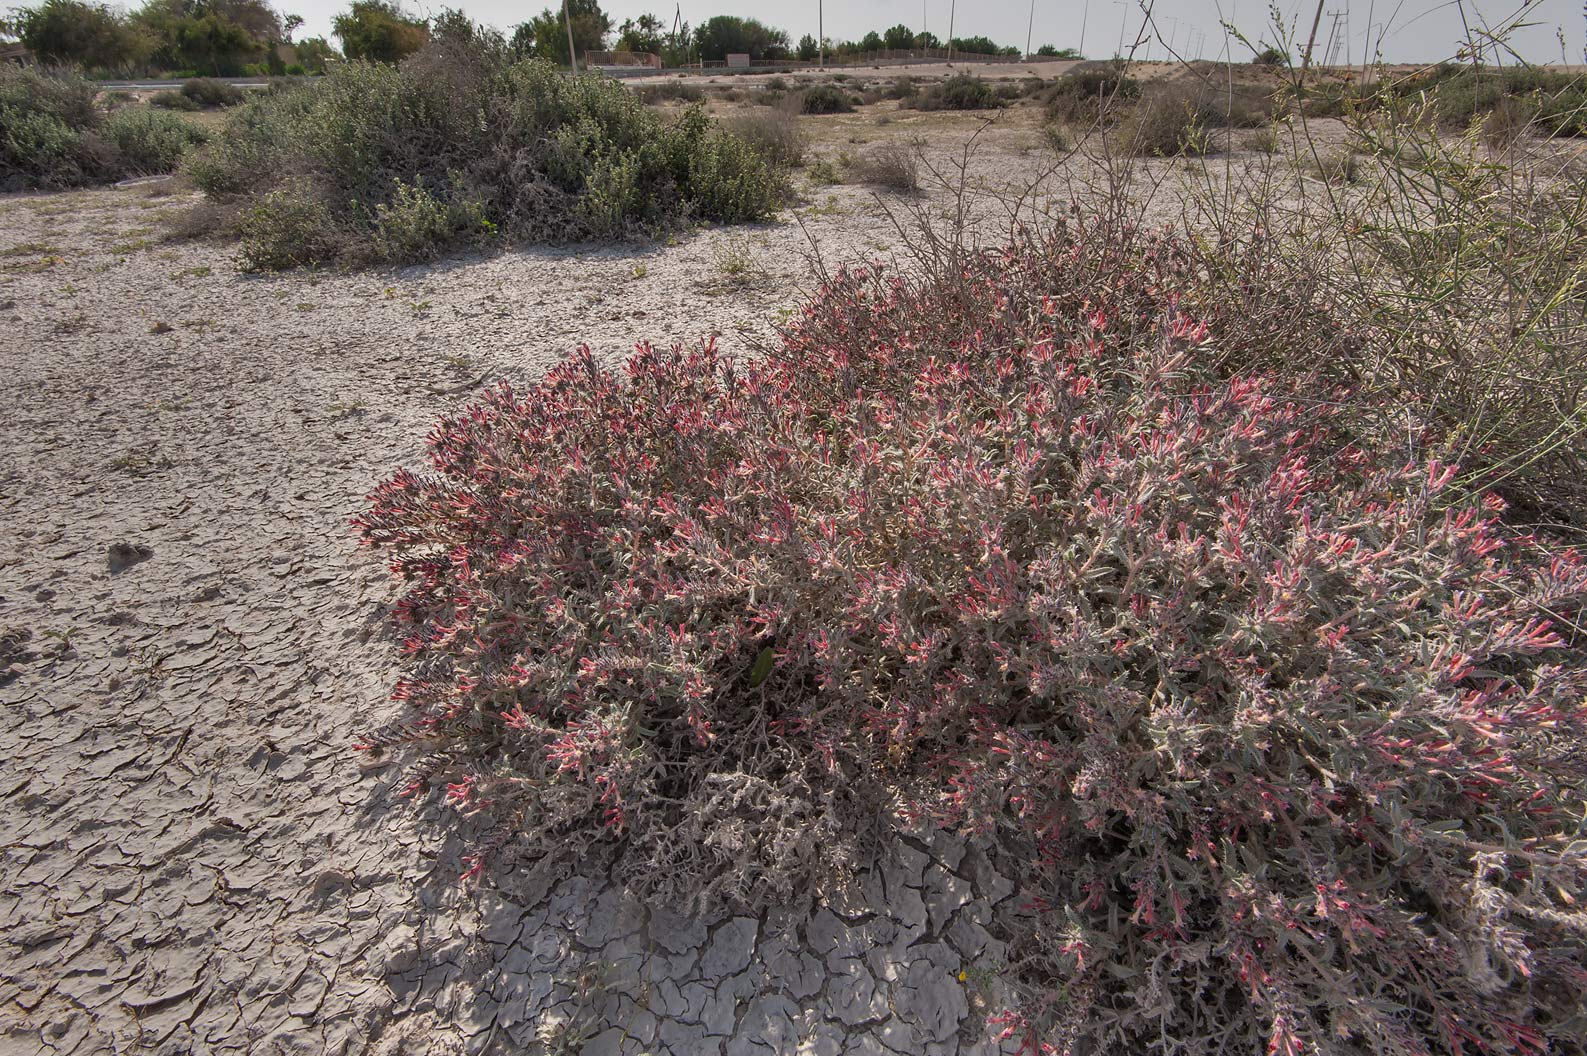 Bush of Moltkiopsis ciliata (Lithospermum...near Umm Bab in south-western Qatar